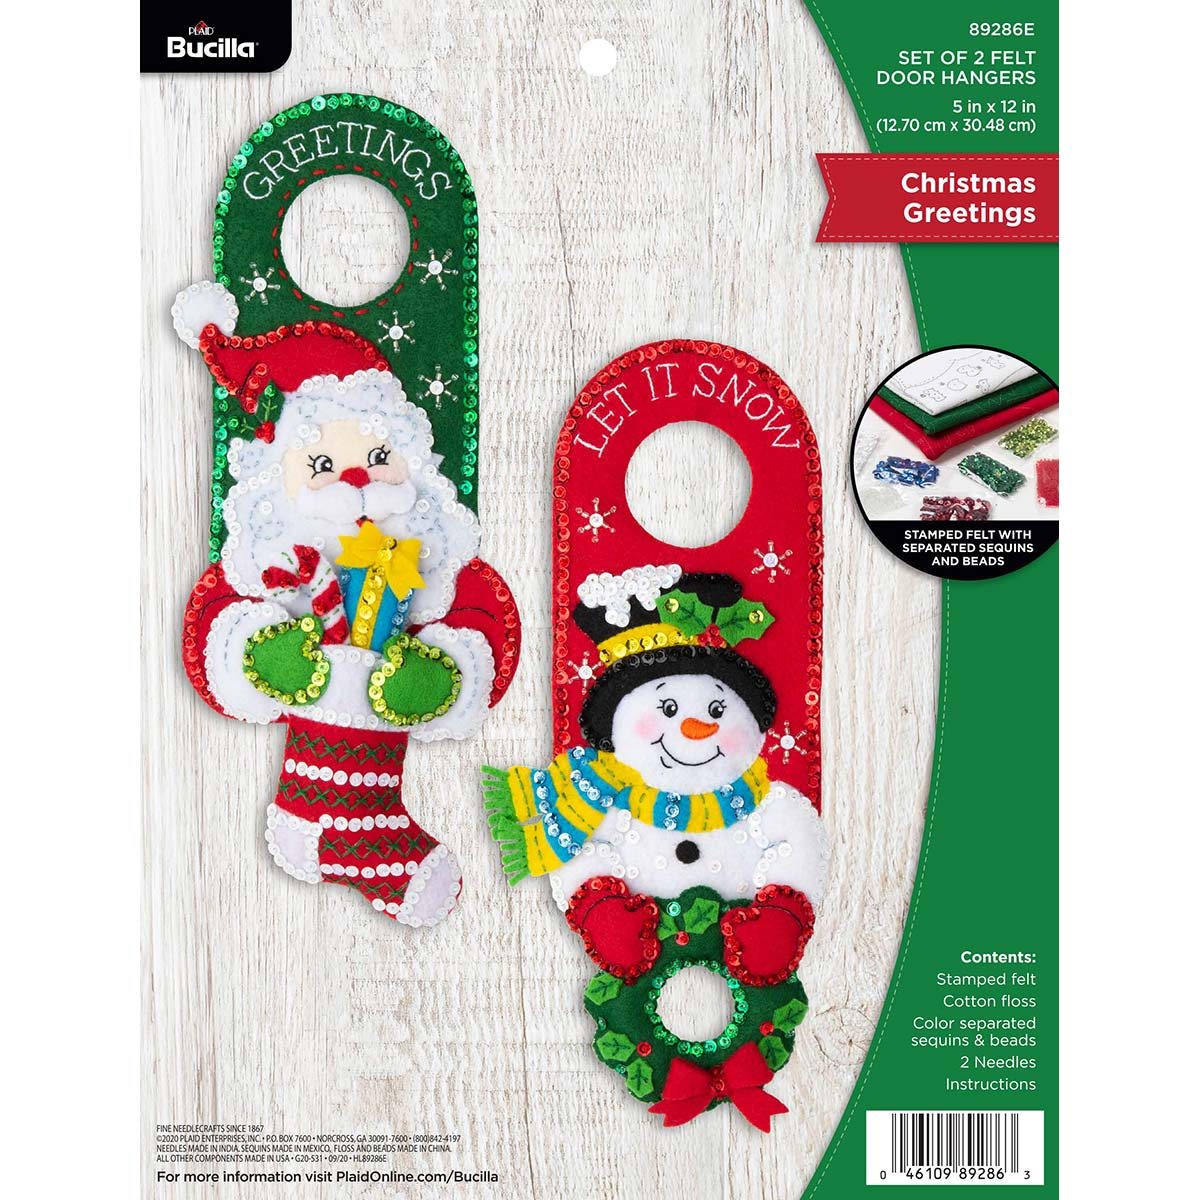 Bucilla ® Seasonal - Felt - Home Decor - Door Hangers - Christmas Greetings - 89286E